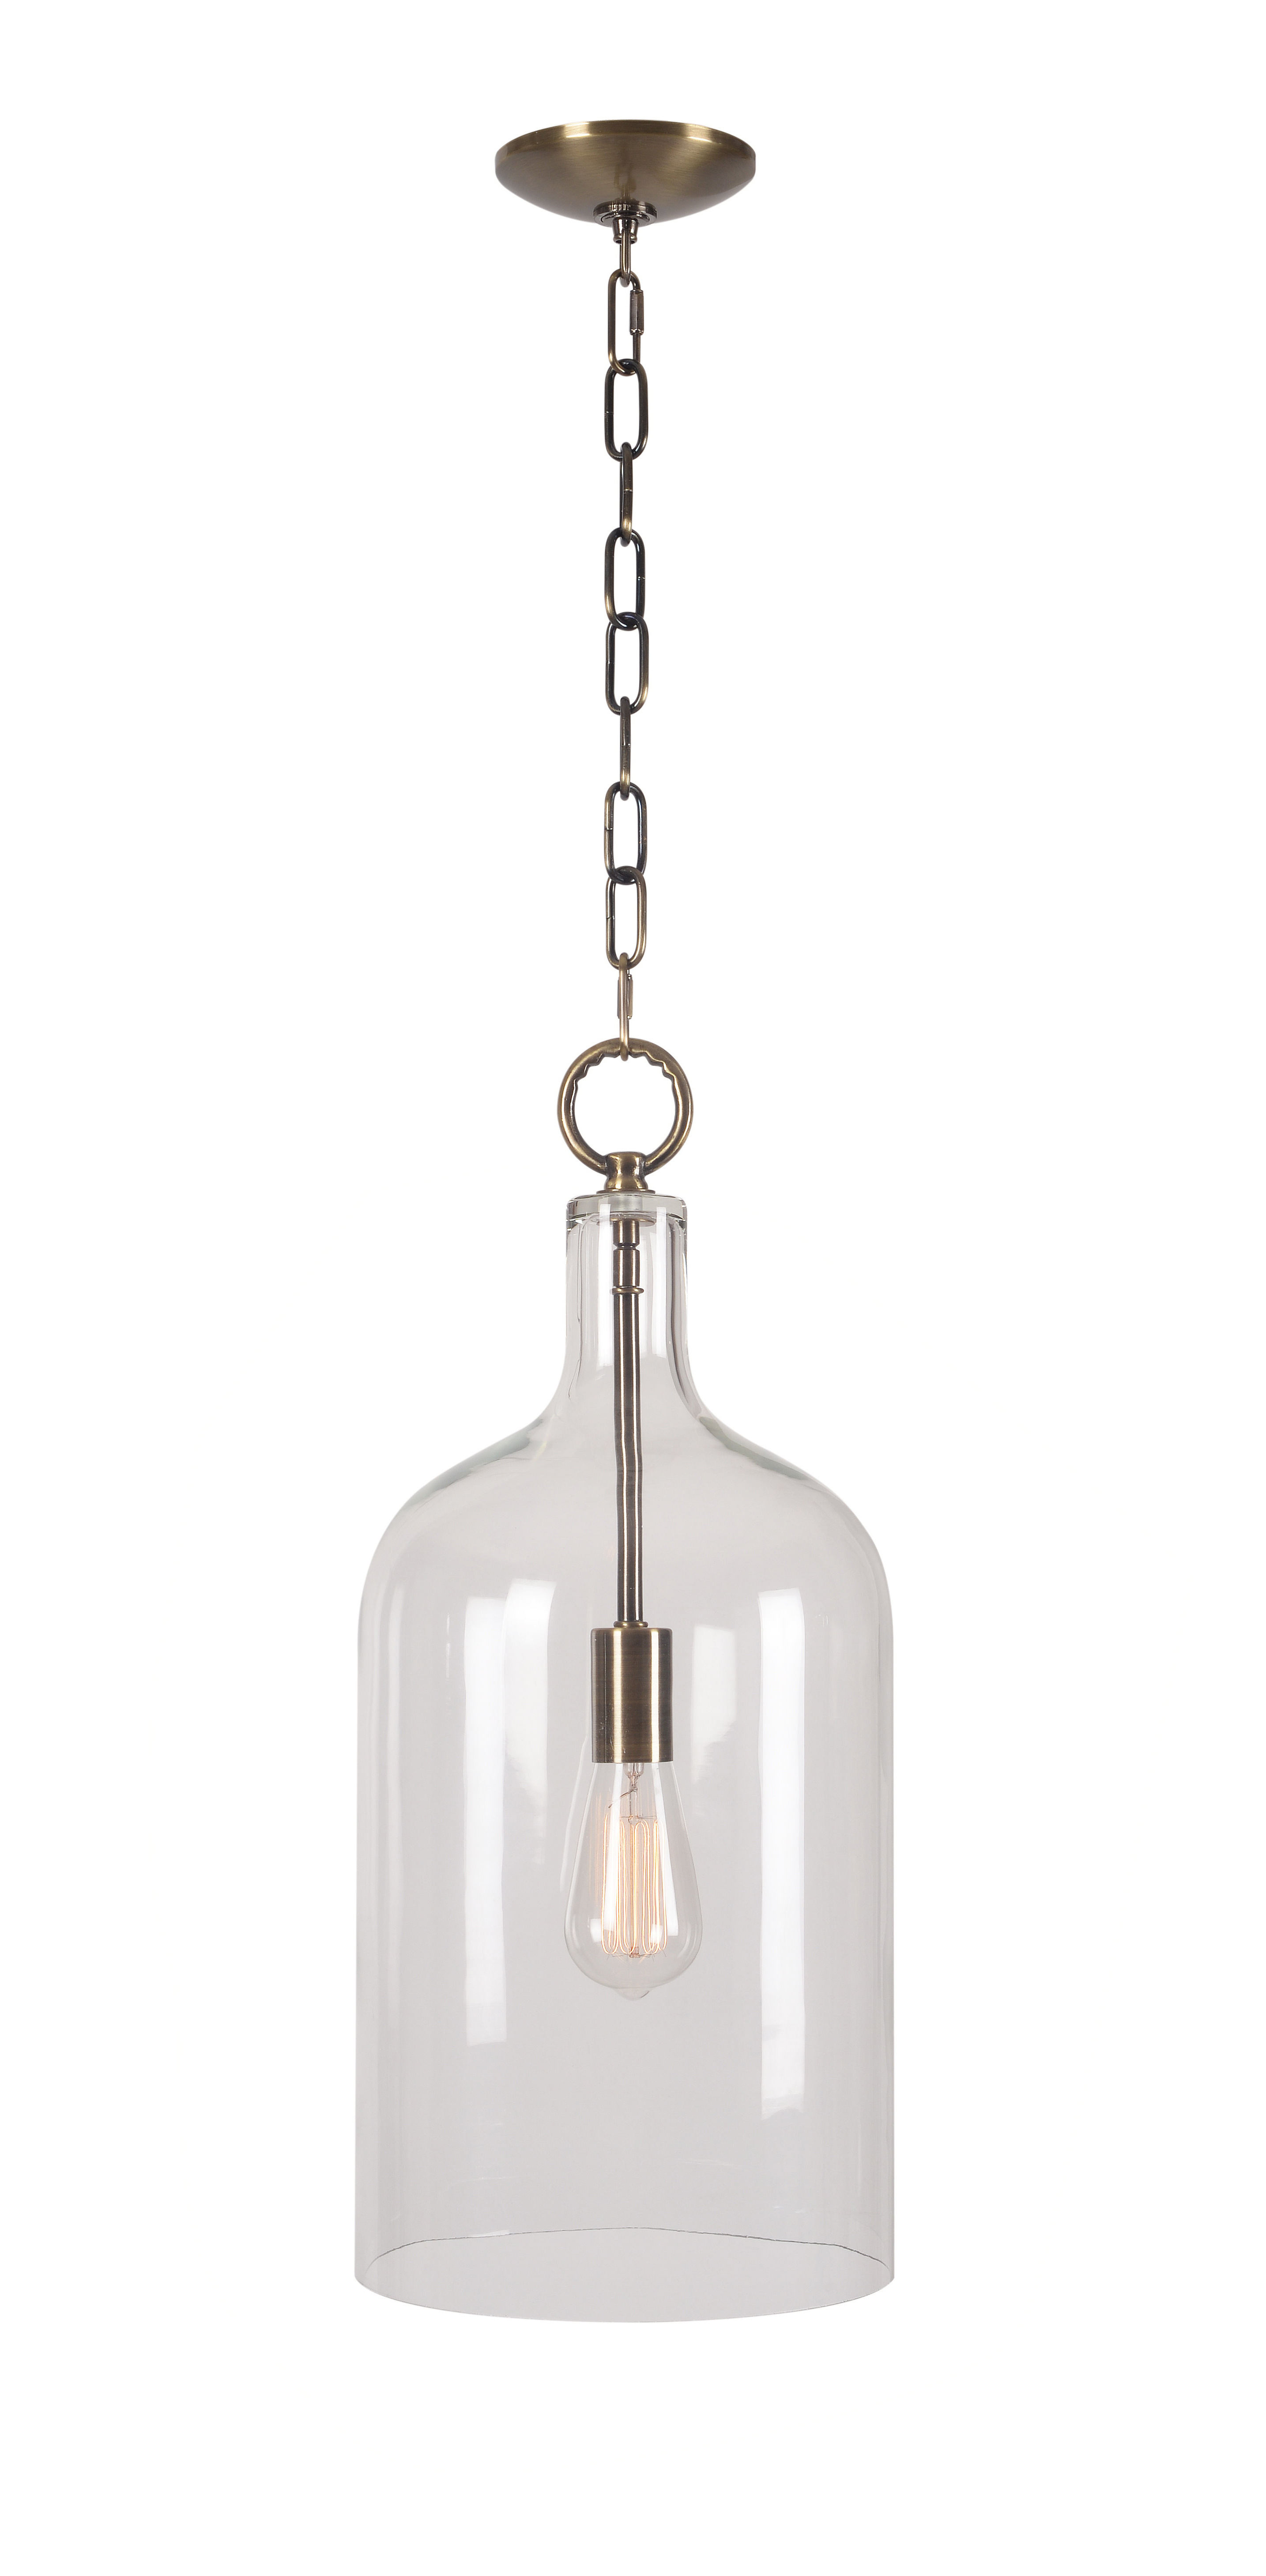 Clematite 1 Light Single Jar Pendant With Widely Used Clematite 1 Light Single Jar Pendants (View 1 of 25)